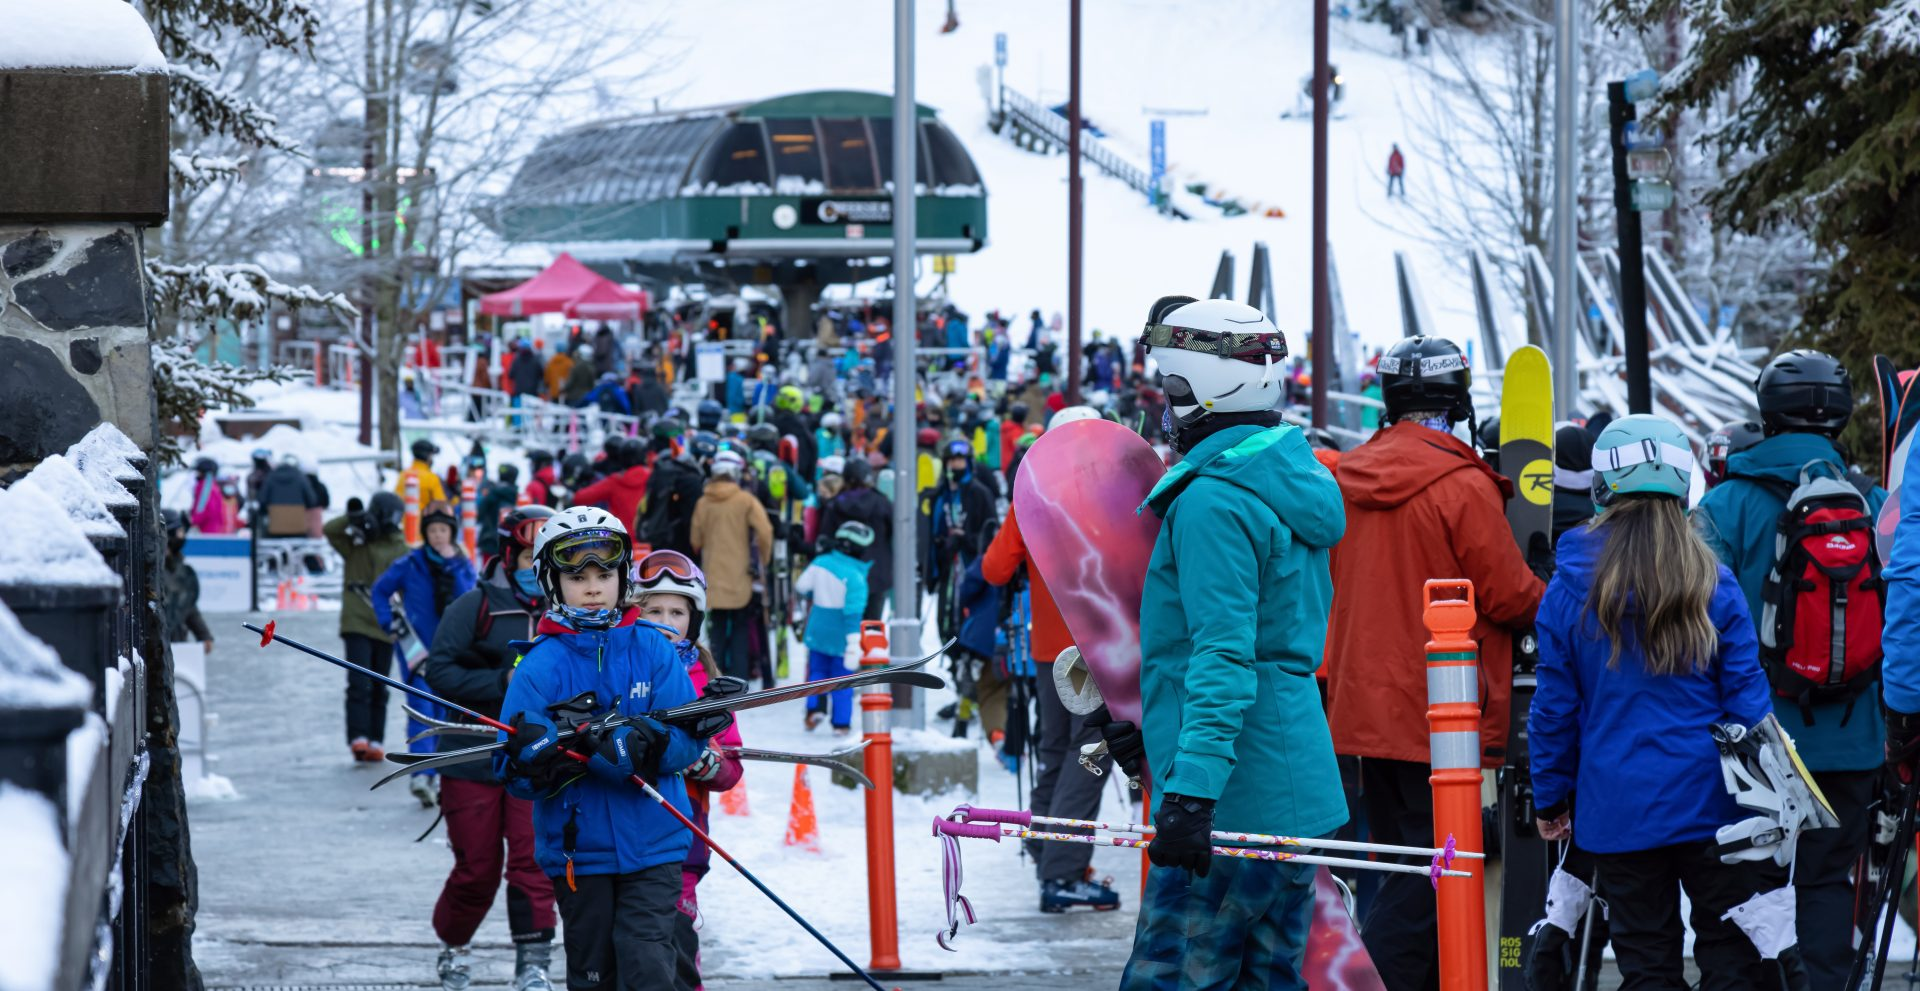 Massive Whistler lineups worry some skiers during COVID-19 case spike